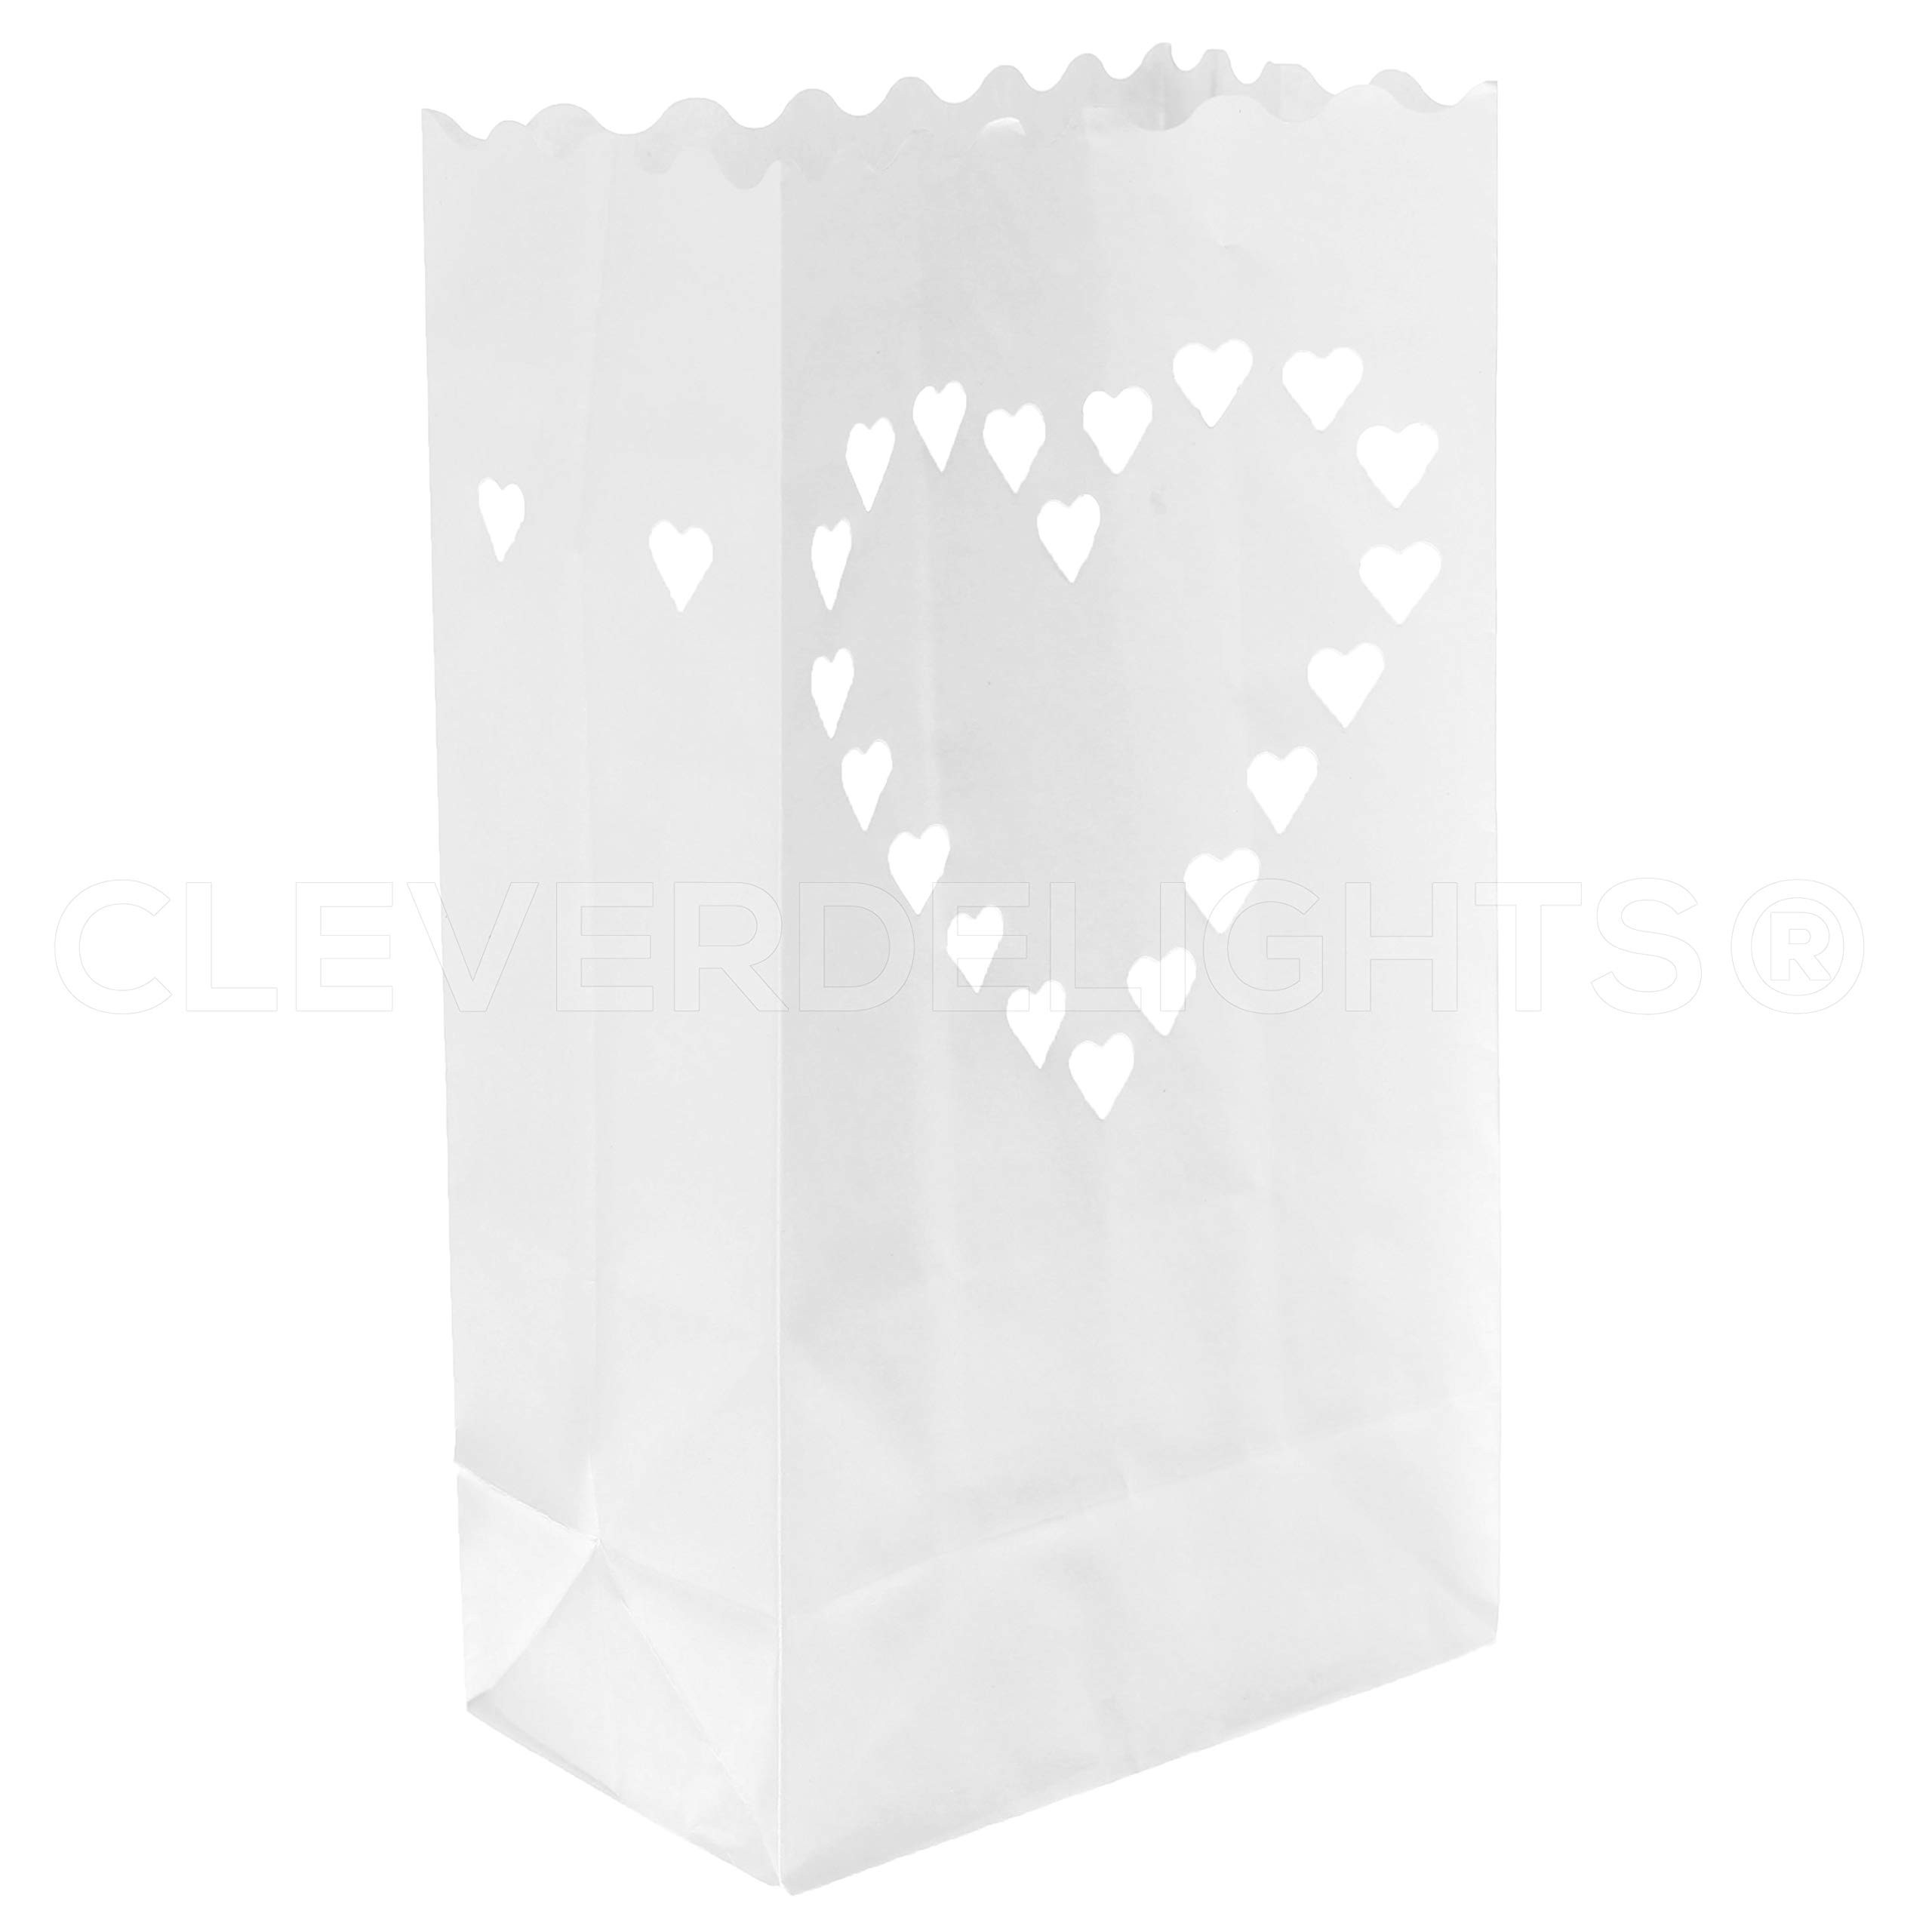 CleverDelights White Luminary Bags - 20 Count - Big Heart Design - Flame Resistant Paper - Wedding, Reception, Party and Event Decor - Luminaria Candle Bag by CleverDelights